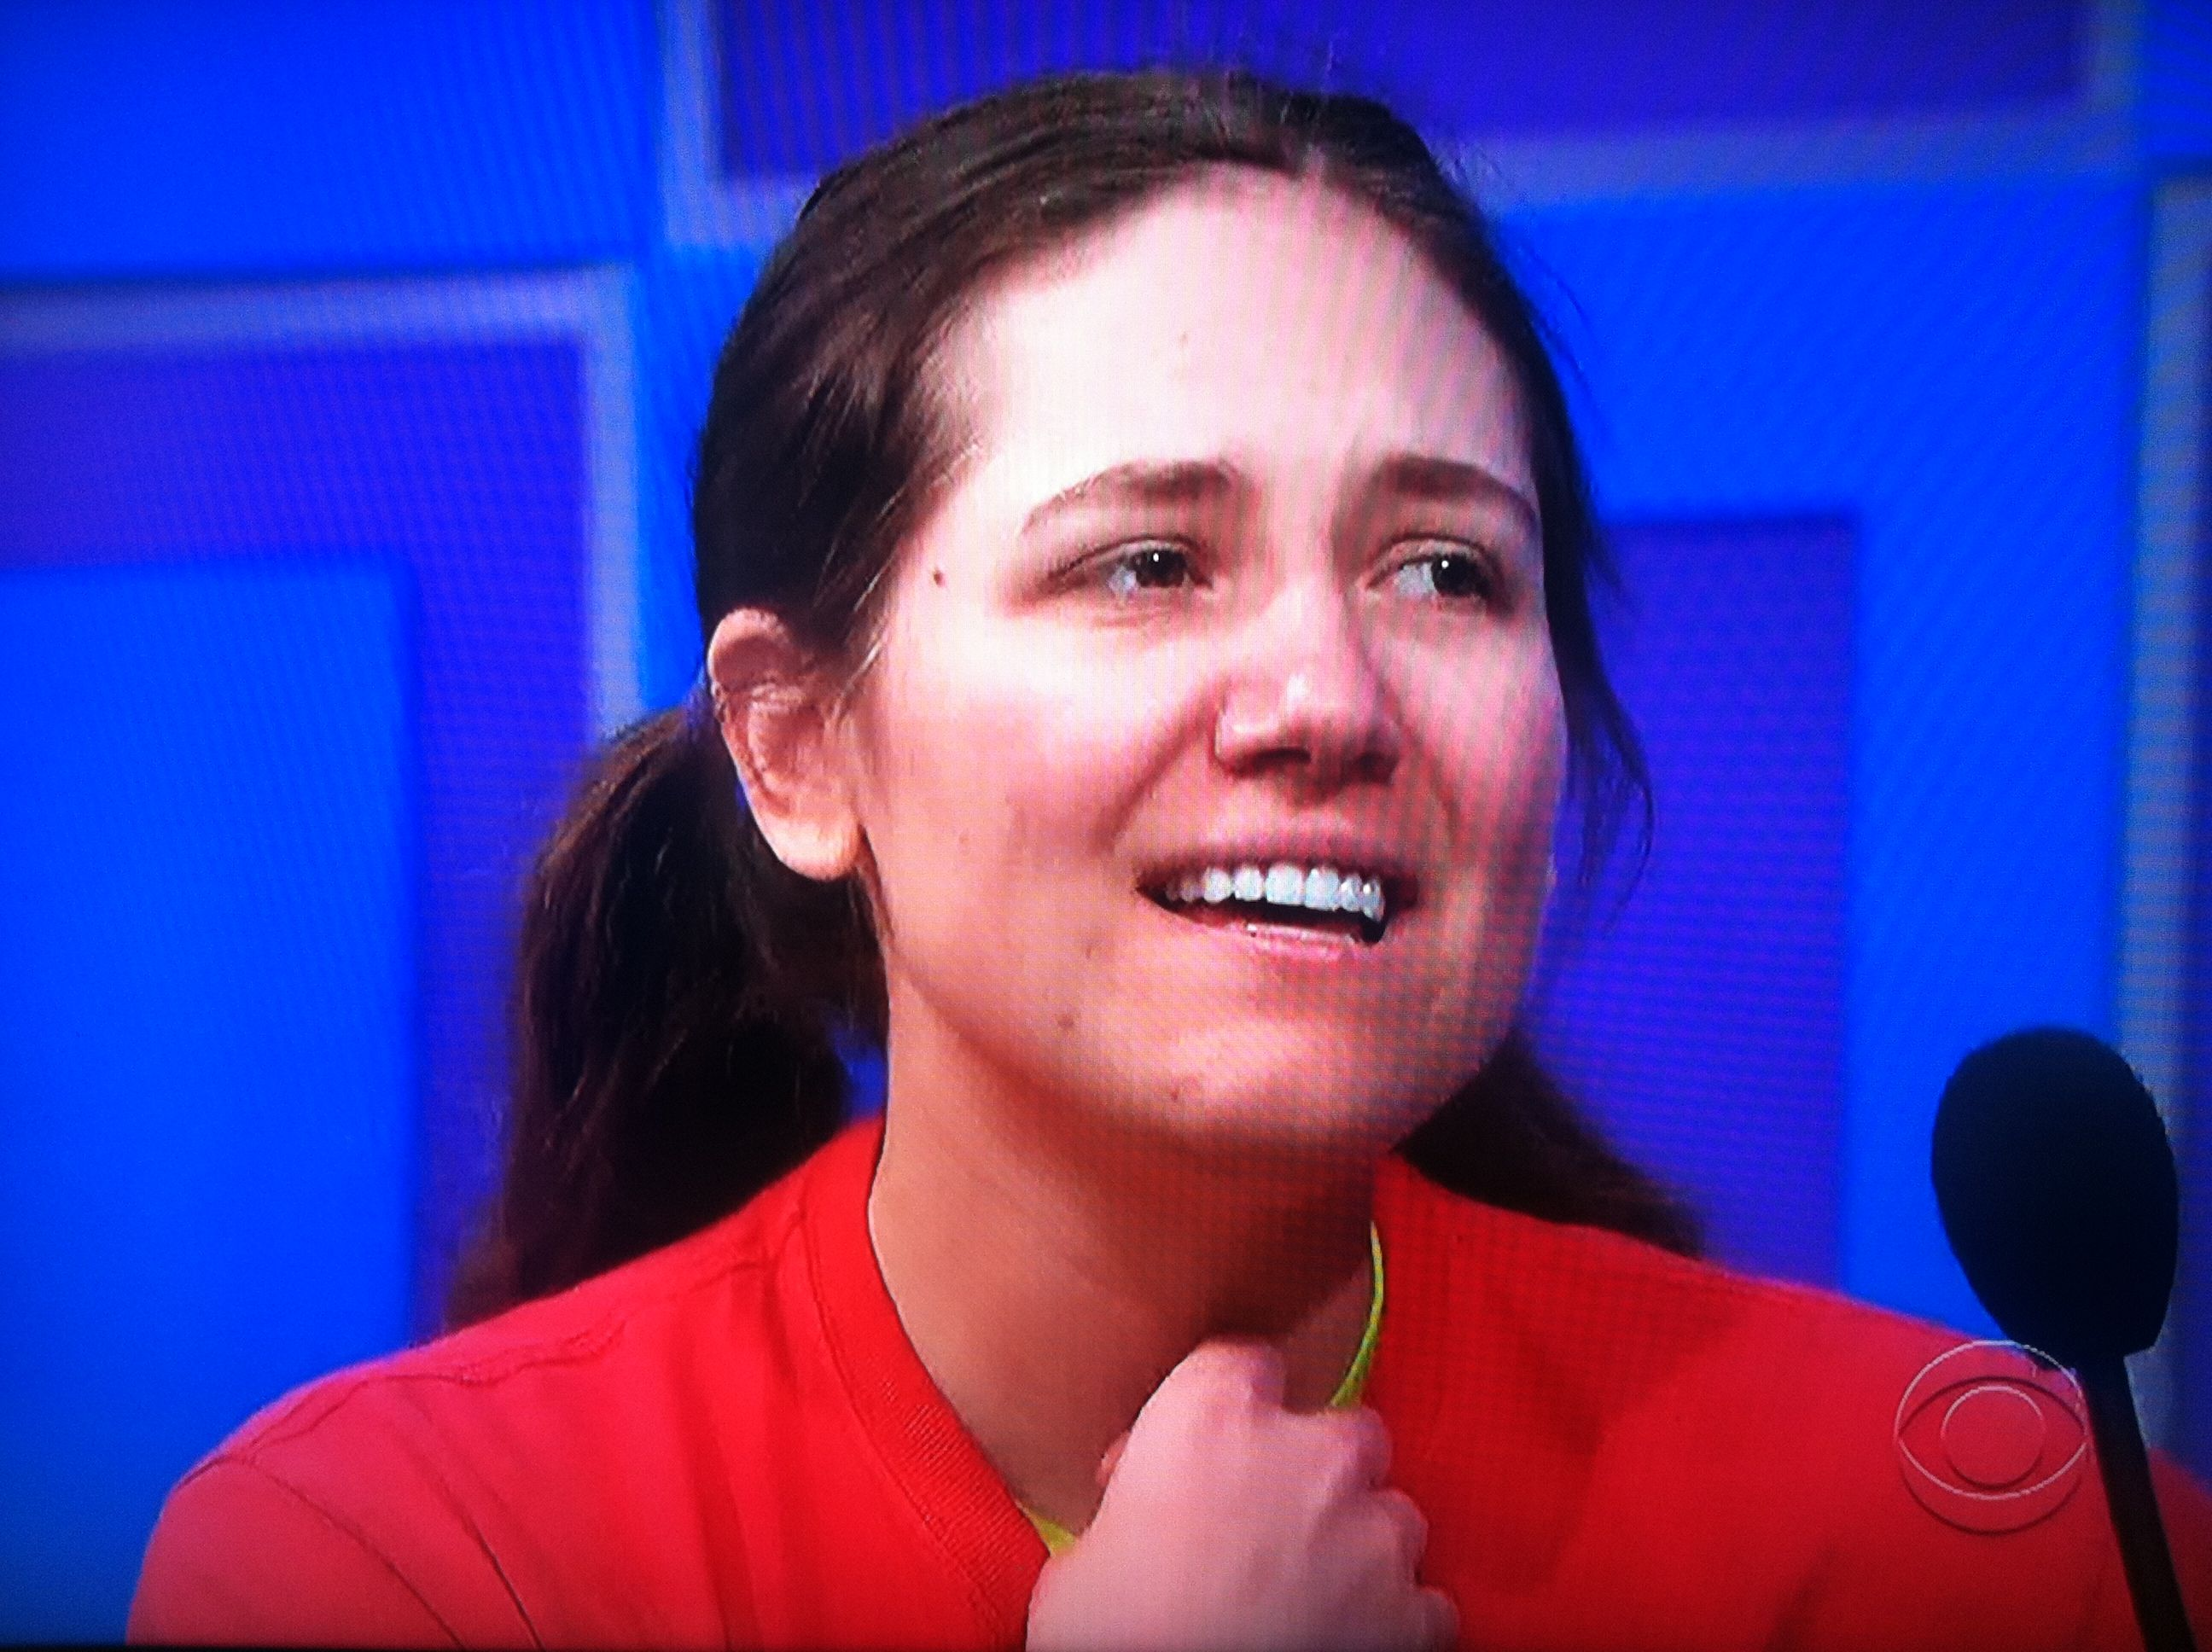 Aurora De Lucia looking quite nervous on The Price is Right